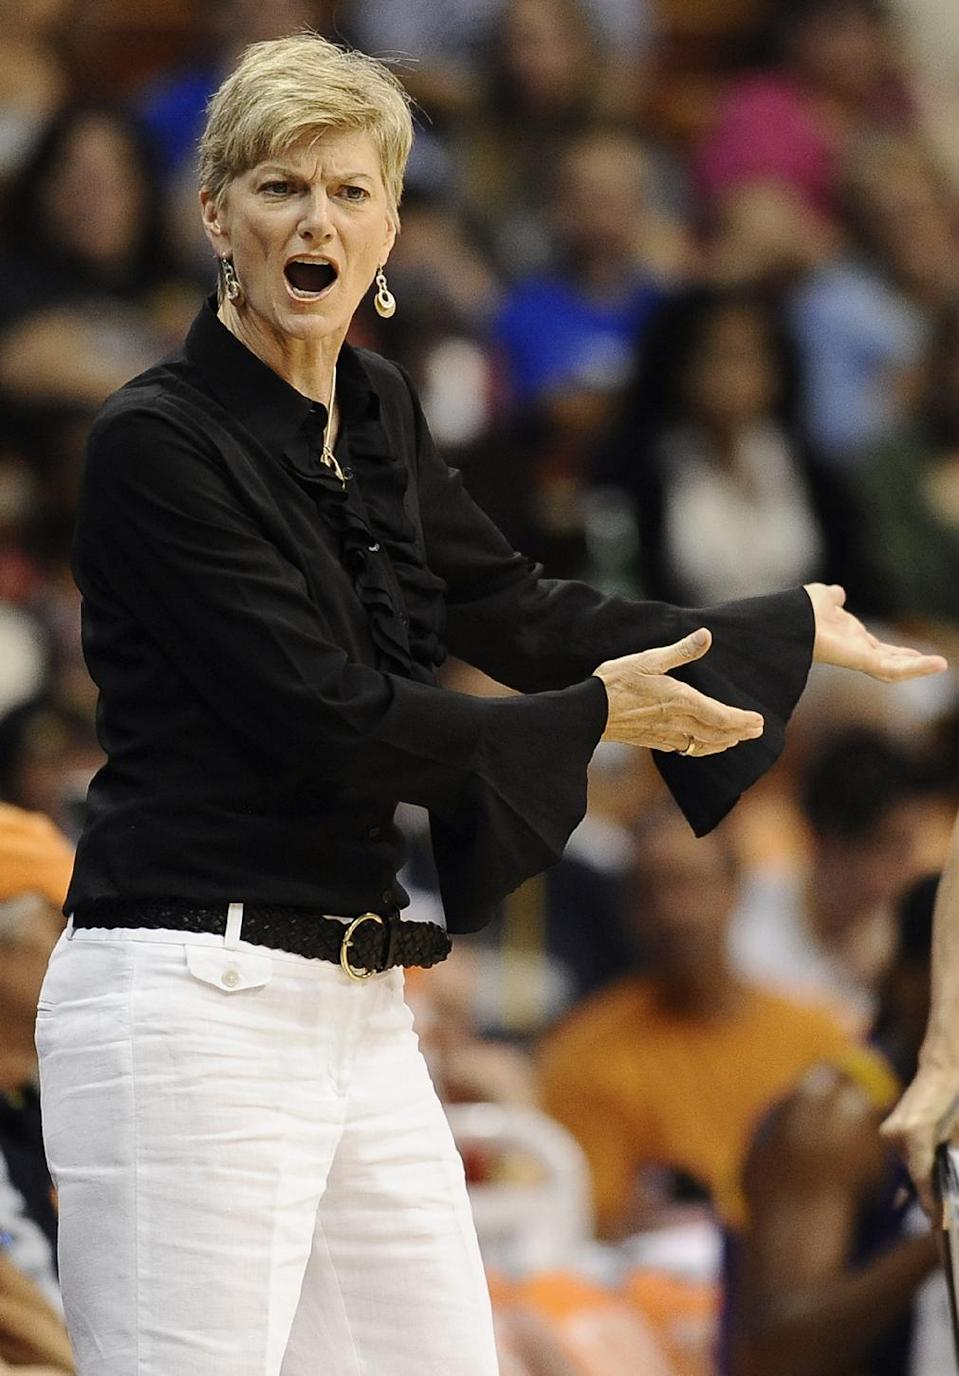 Los Angeles Sparks head coach Carol Ross reacts to a technical foul called on her during the first half of a WNBA basketball game against the Connecticut Sun in Uncasville, Conn., Tuesday, Aug. 6, 2013. (AP Photo/Jessica Hill)